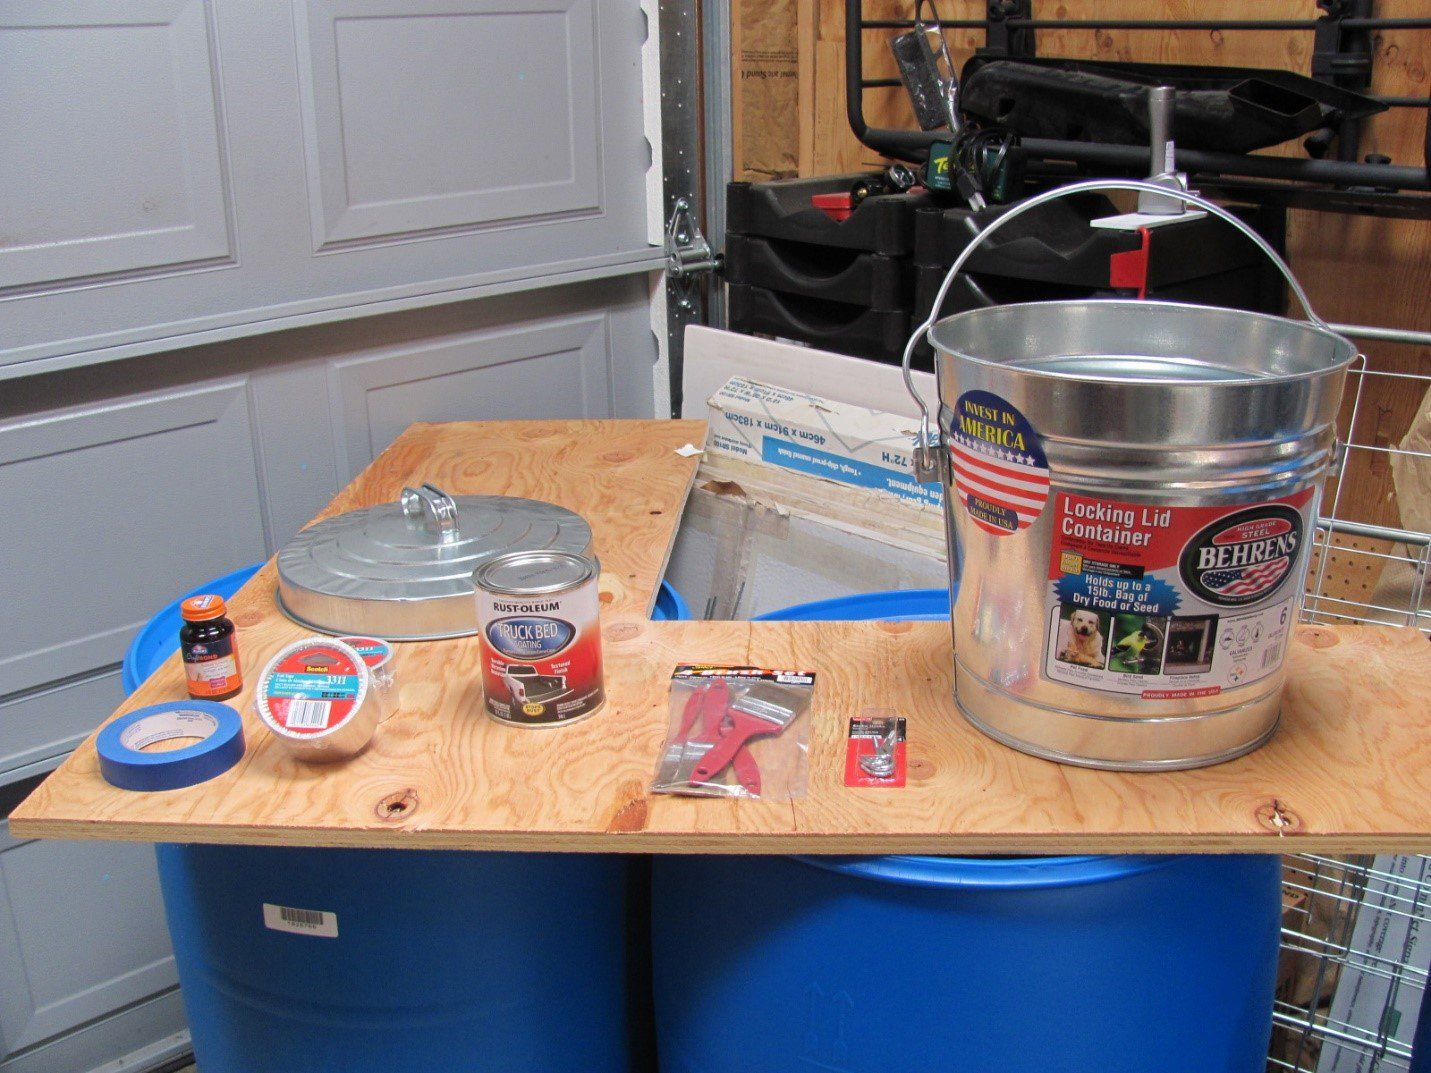 How To Make A Faraday Cage For Less Than 5 The Survivalist Blog Survival Wilderness Survival Skills Survival Tips